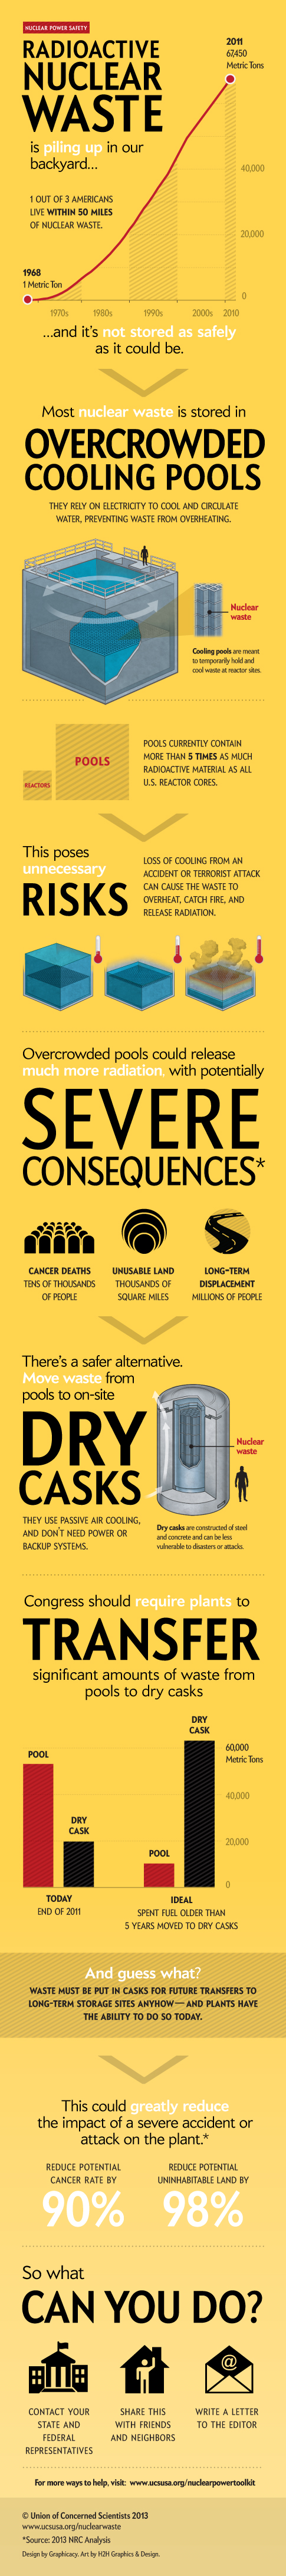 03 nuclear-waste-dry-cask-infographic